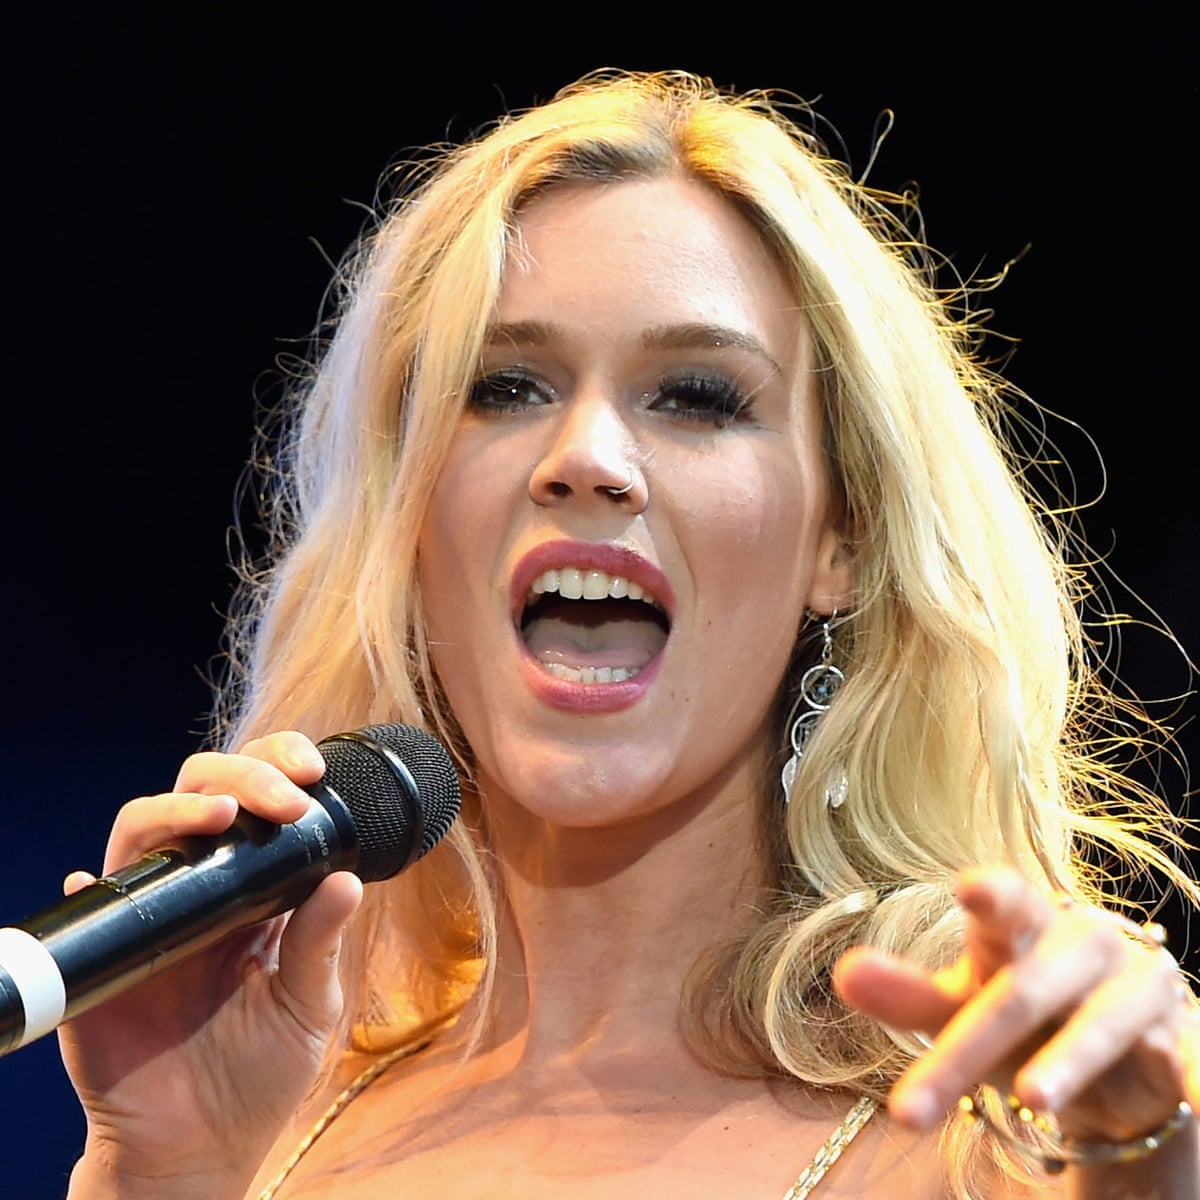 Joss Stone 'detained and deported' from Iran | Joss Stone | The Guardian